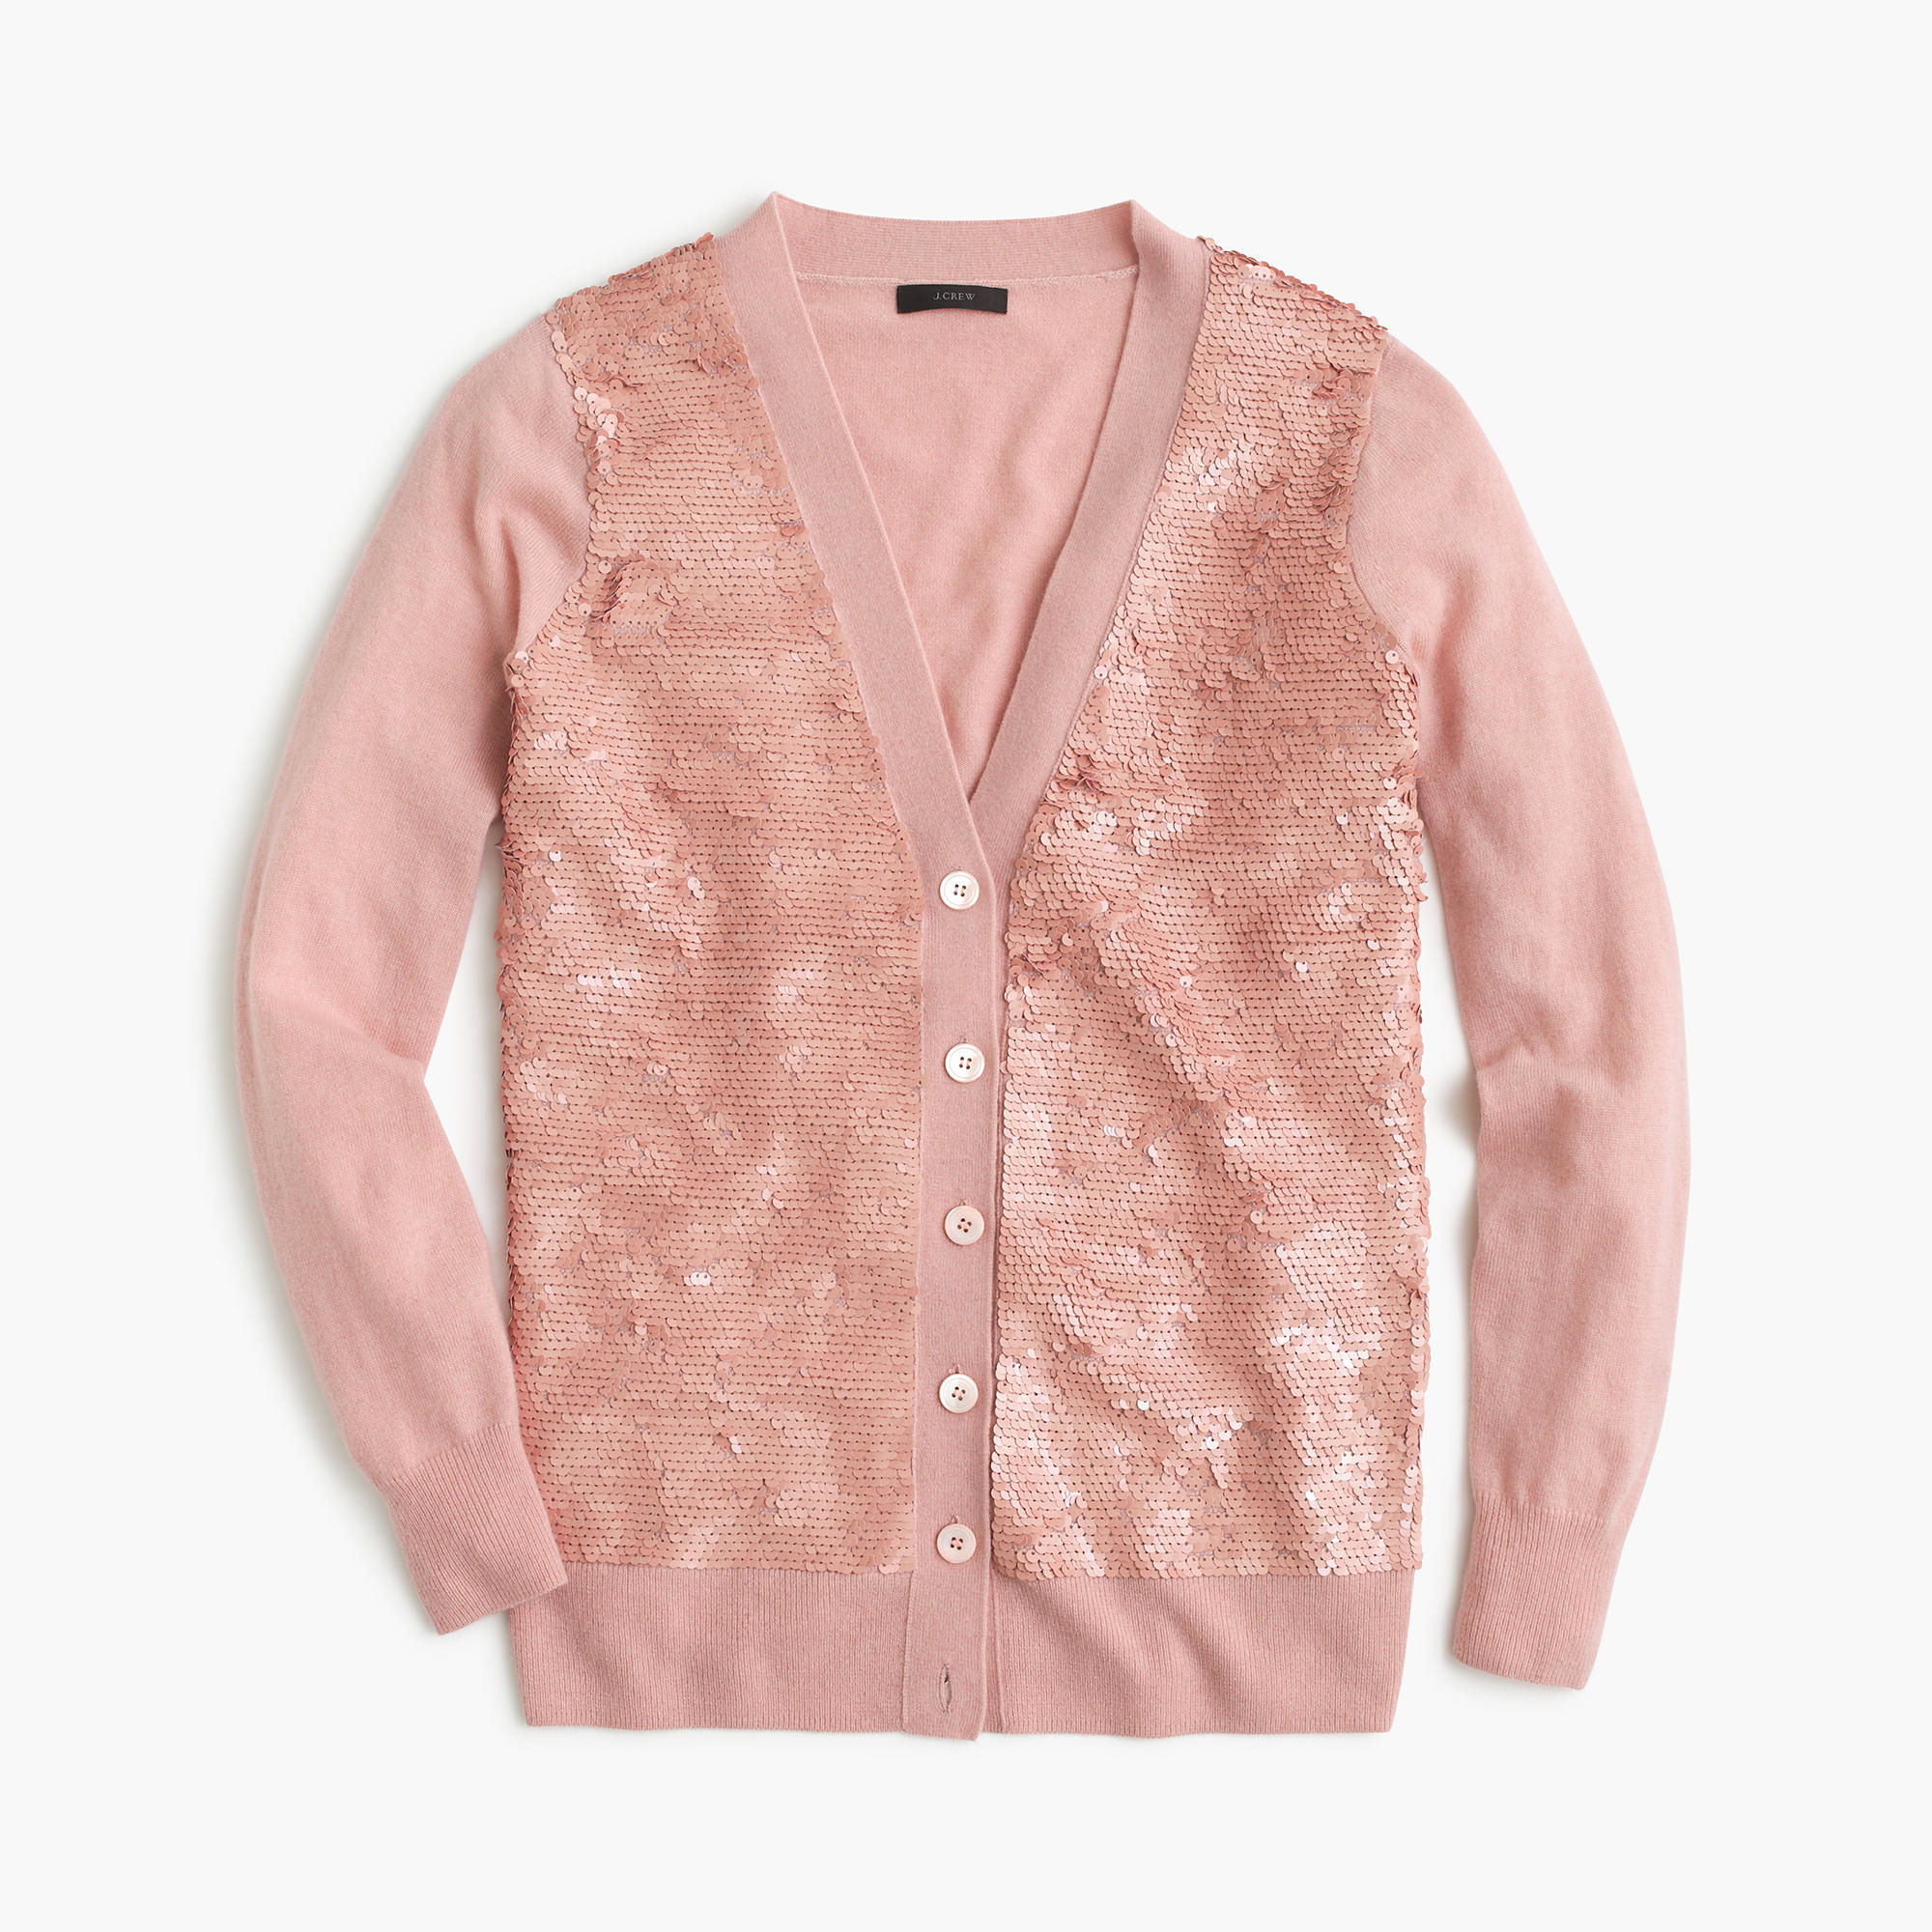 J.crew Sequin Cardigan Sweater in Pink | Lyst